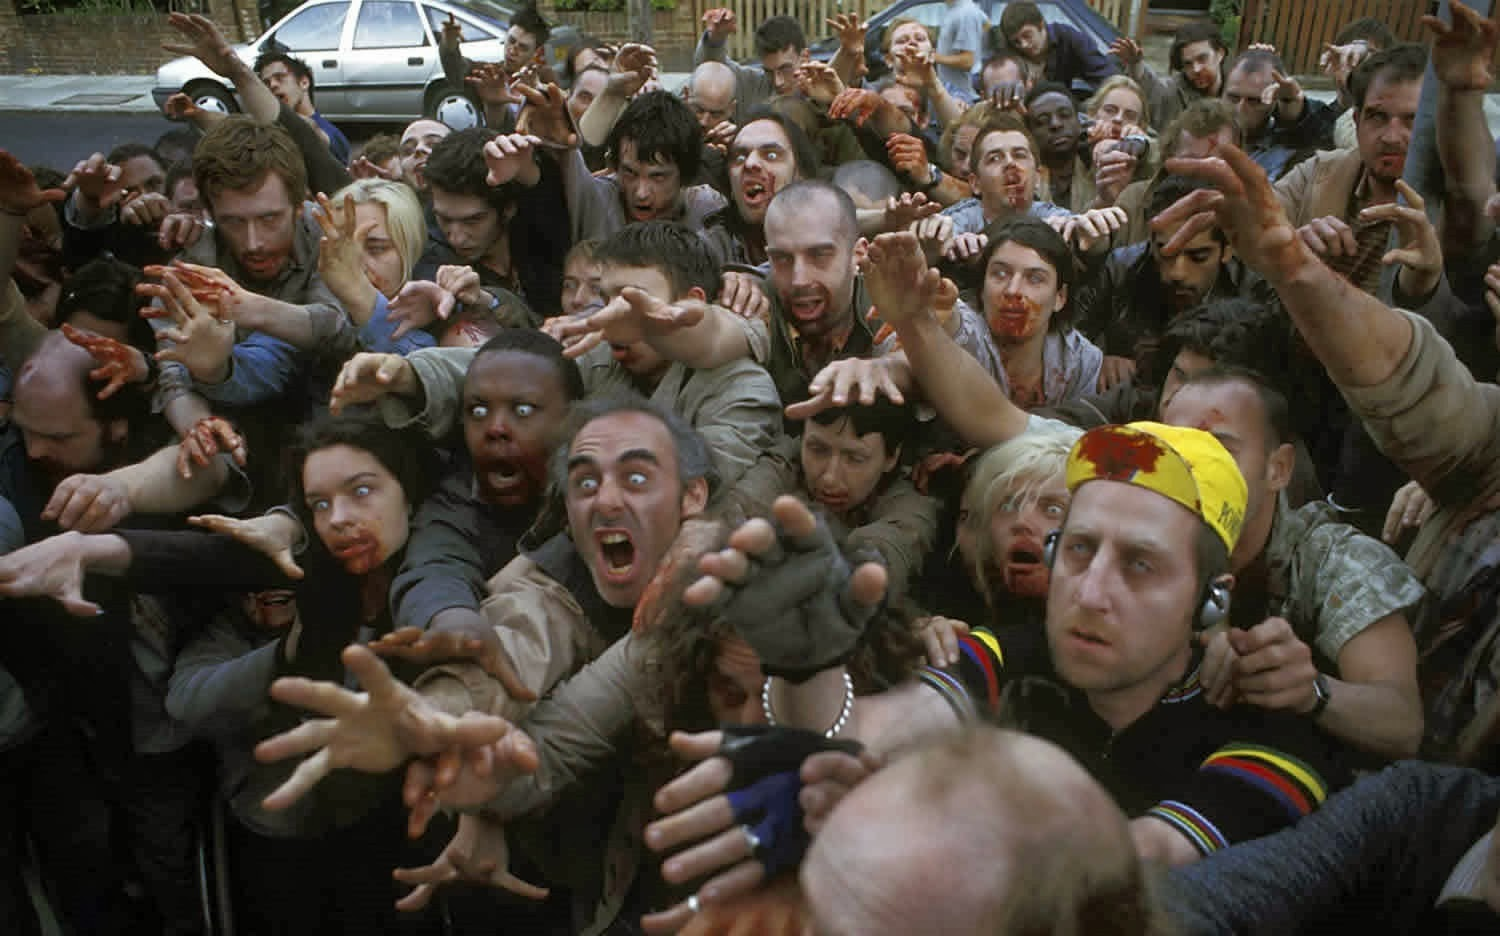 Shaun of the Dead, zombies,zombie movie